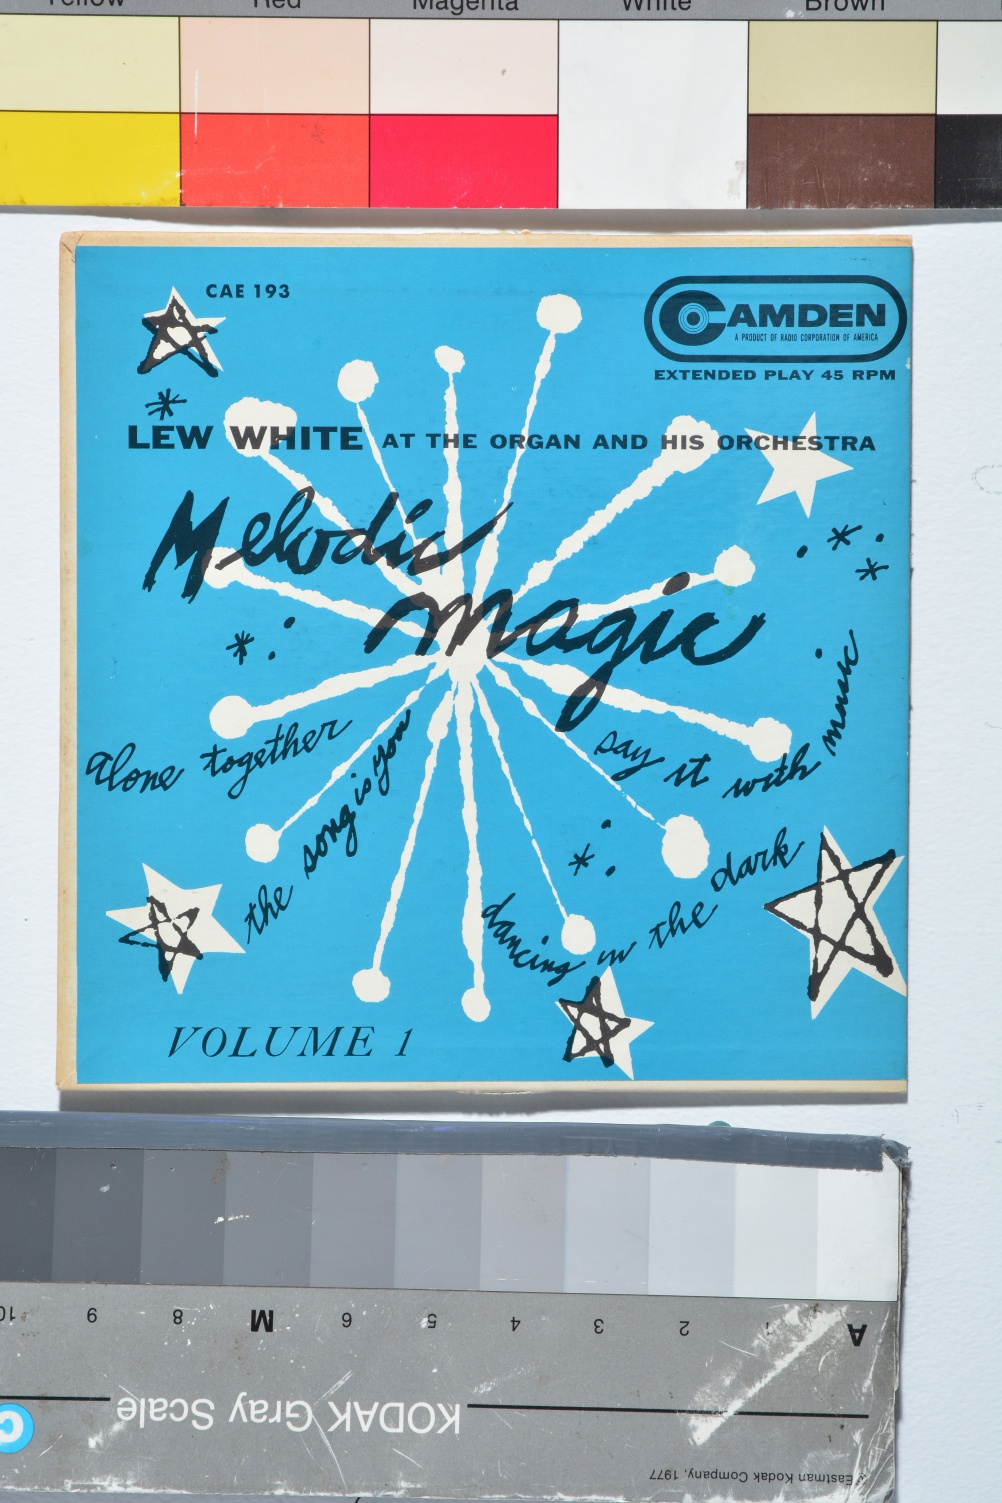 Melodic Magic Volume I, 1953. Lew White at the organ and his orchestra. © The Andy Warhol Foundation for the Visual Arts, Inc.